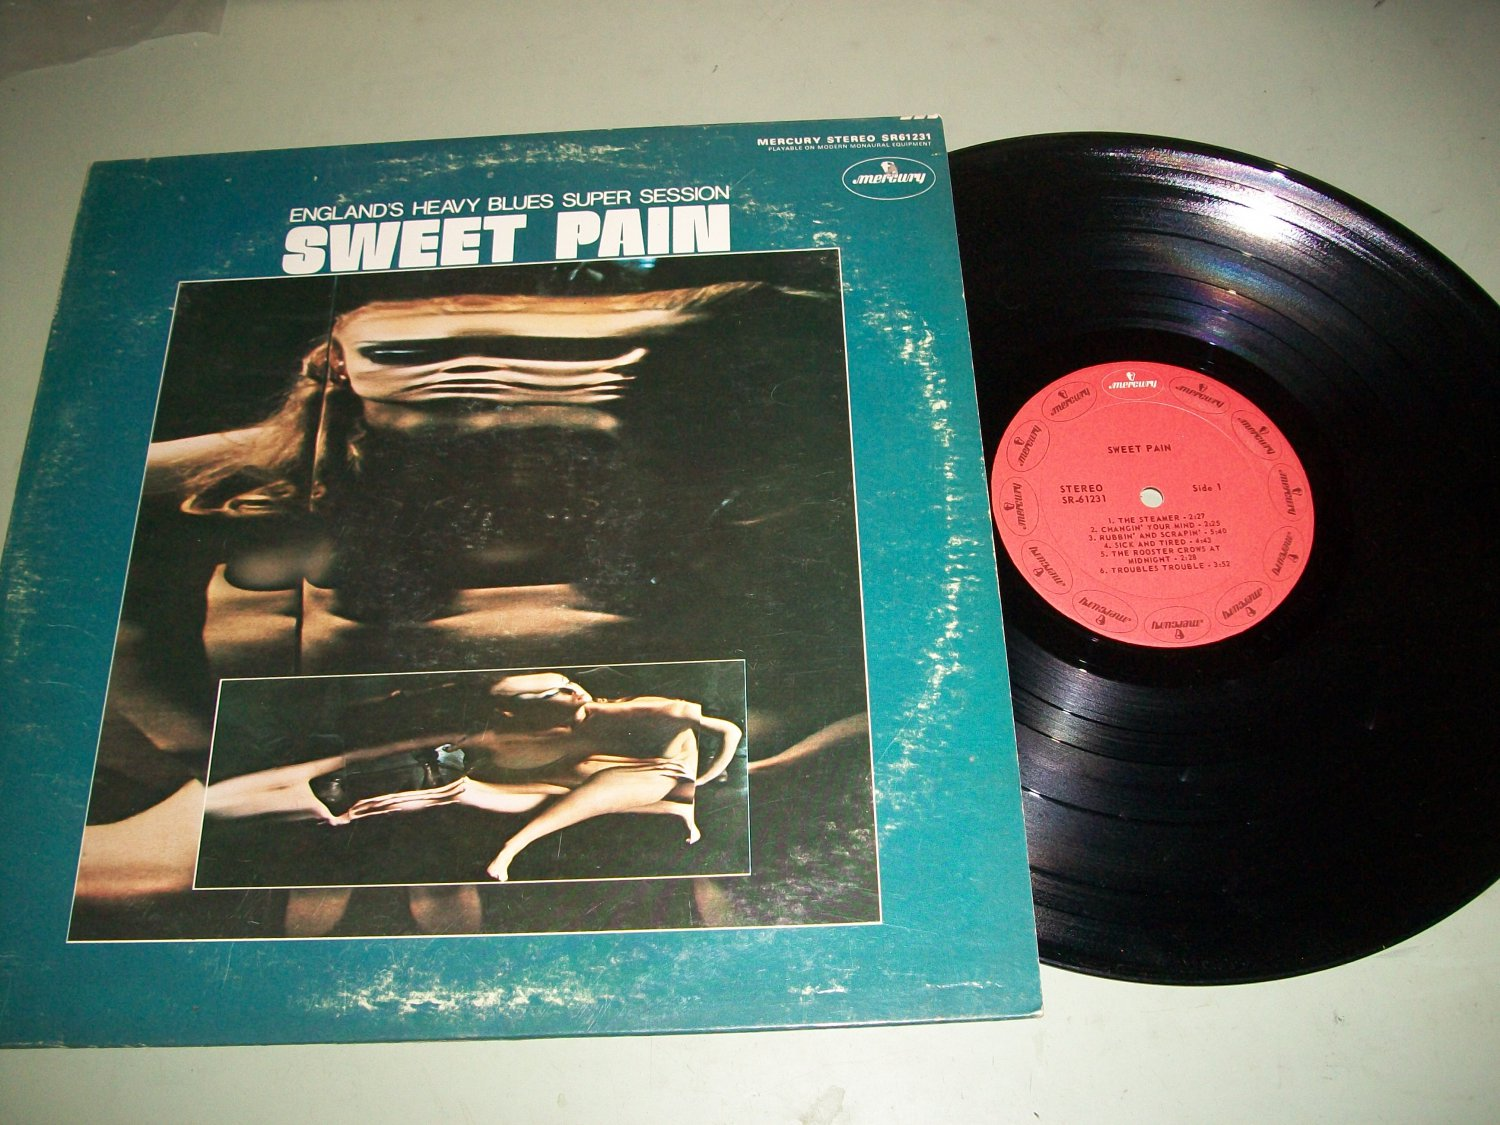 Sweet Pain Englands Heavy Blues Super Session